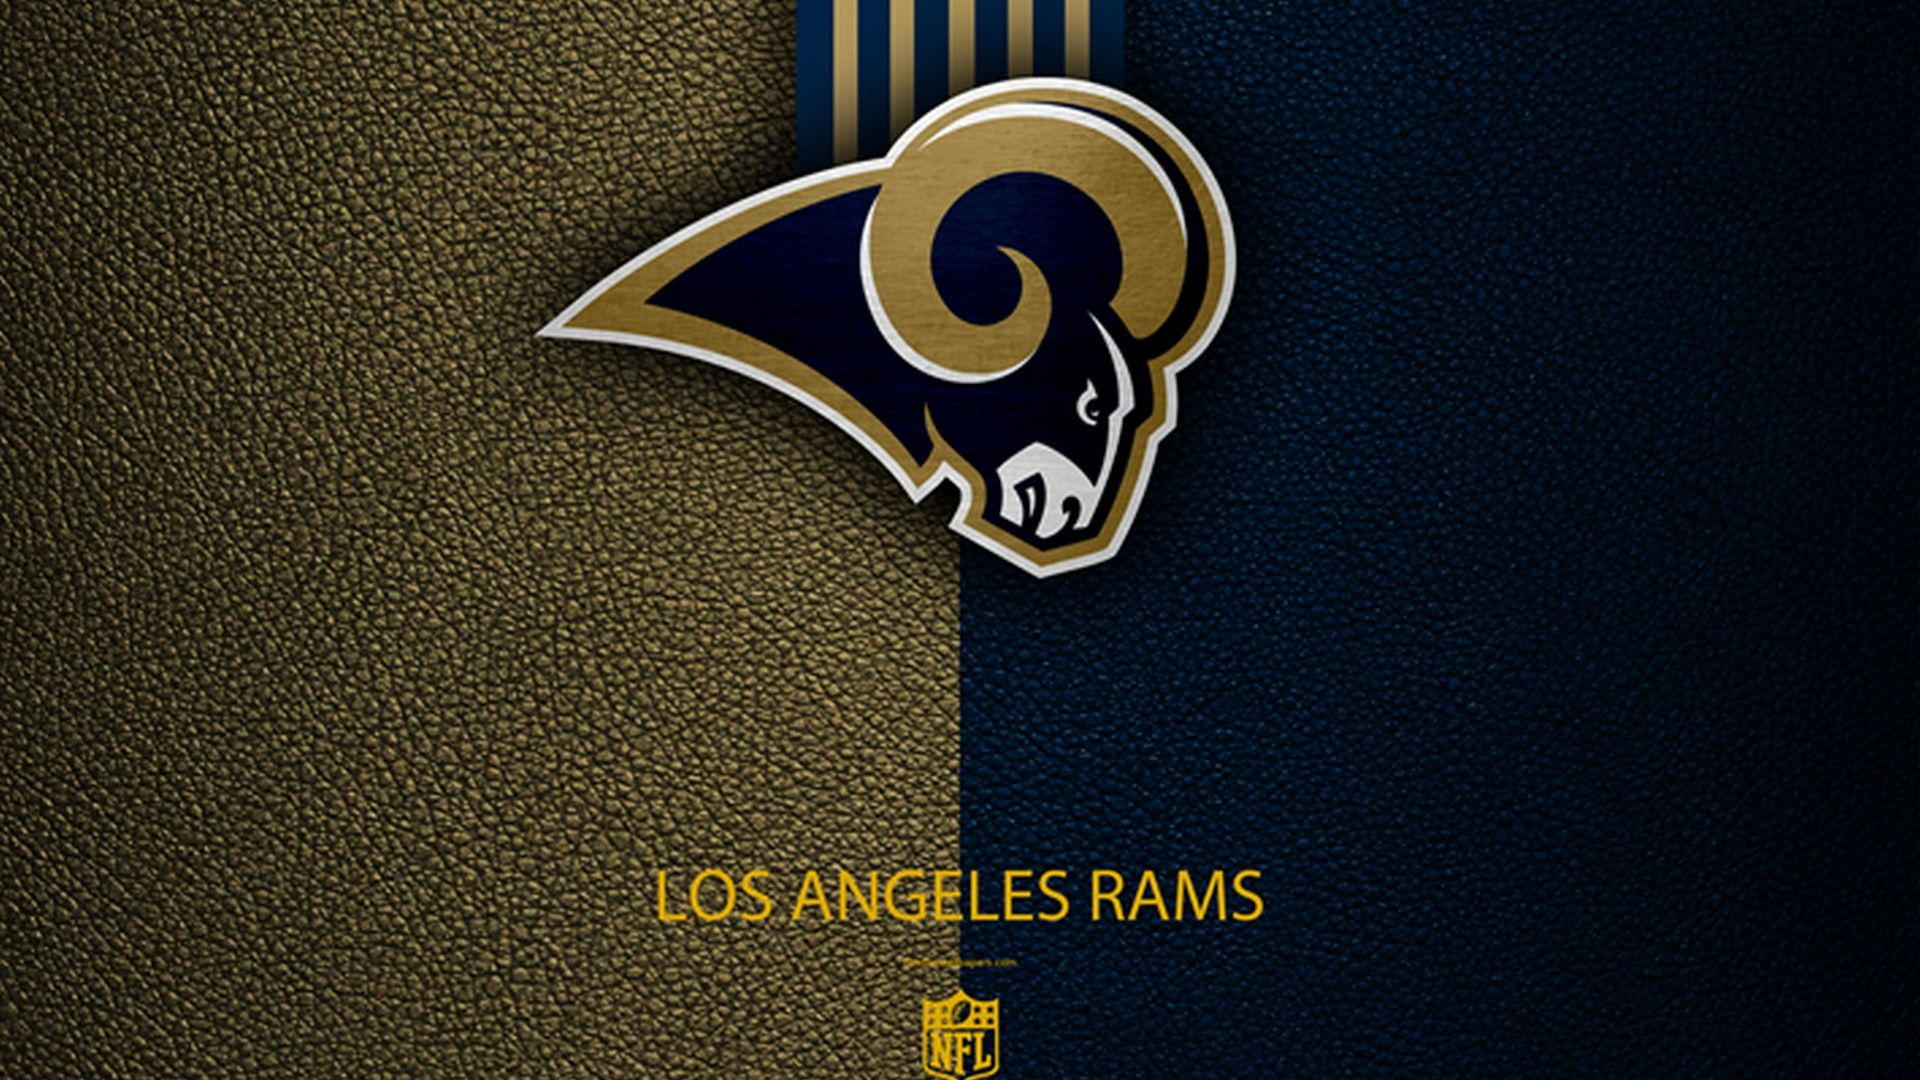 Nfl Wallpapers Los Angeles Rams Nfl Football Wallpaper Football Wallpaper